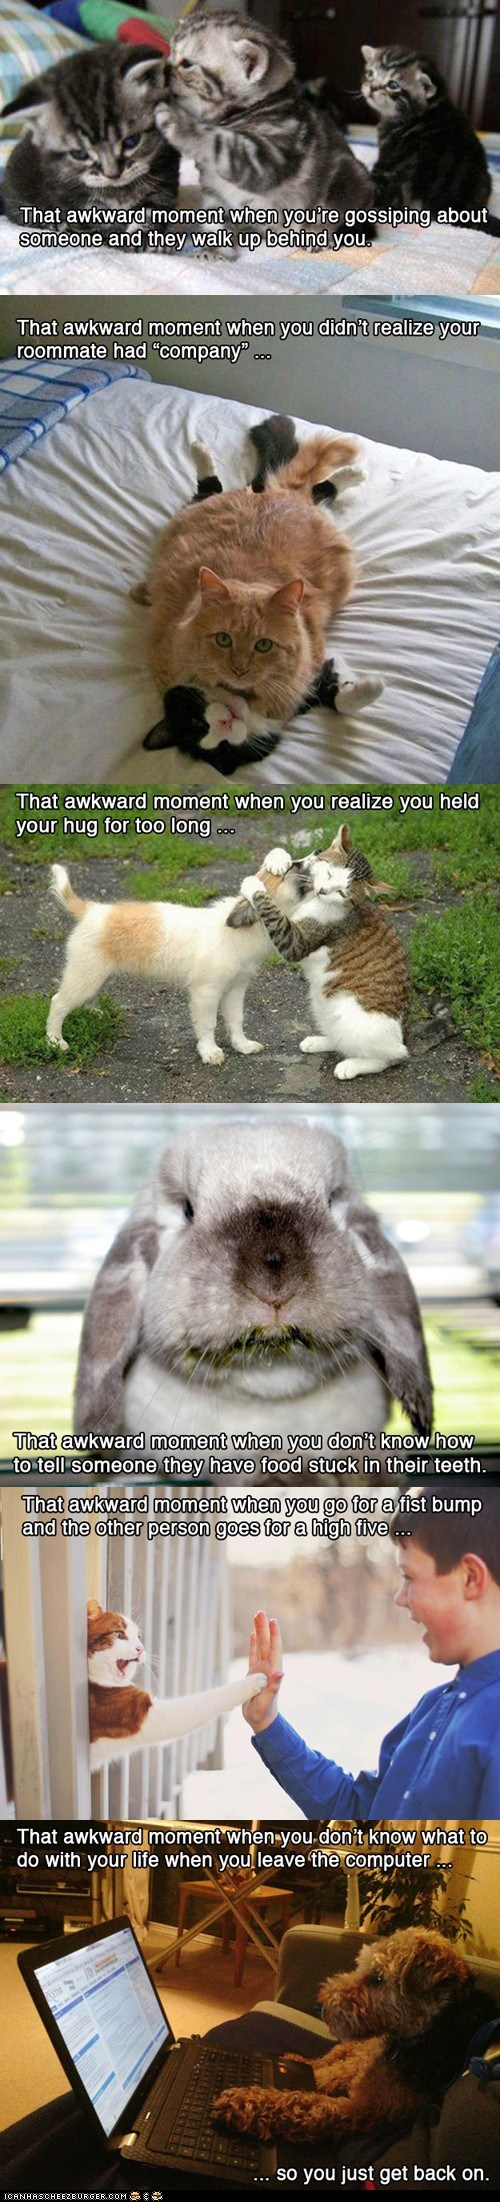 Awkward,bunnies,Cats,dogs,life,multipanel,social situations,socially awkward